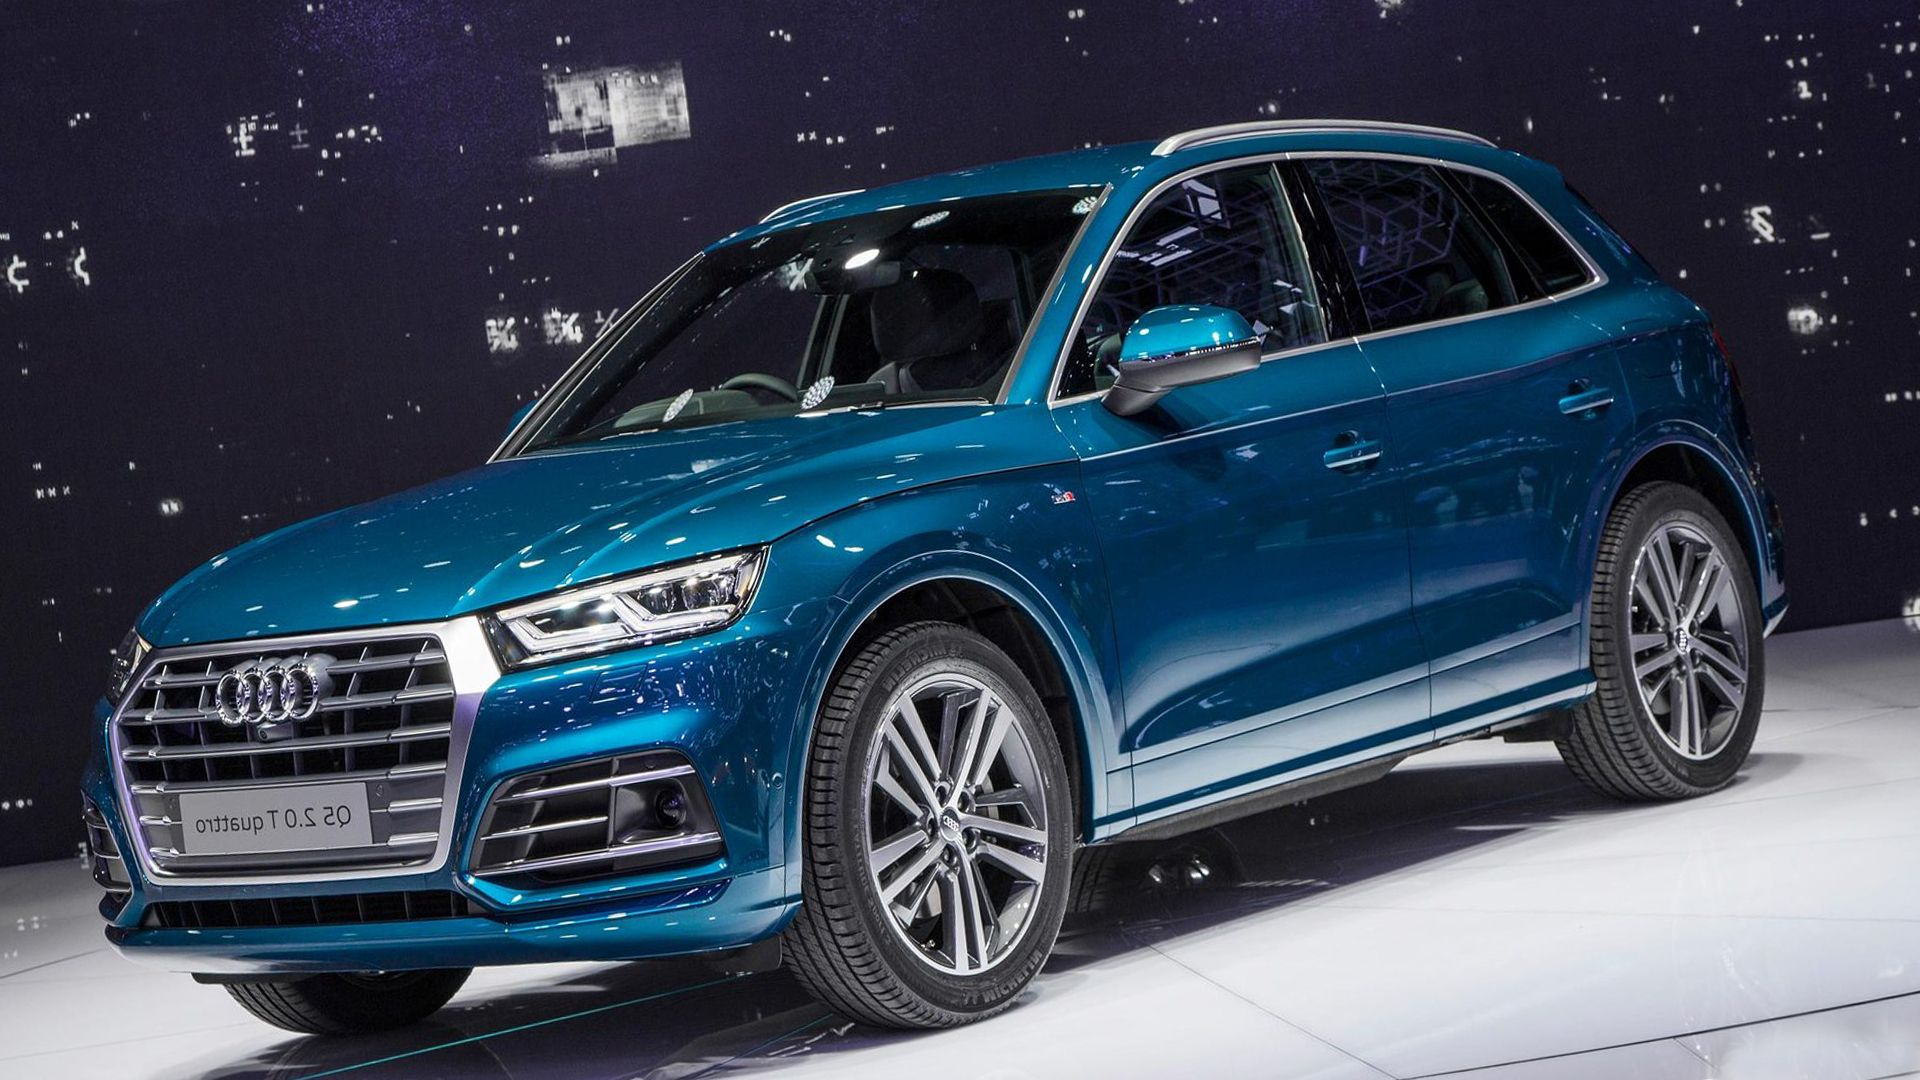 43 All New 2019 Audi Q5 Suv Configurations